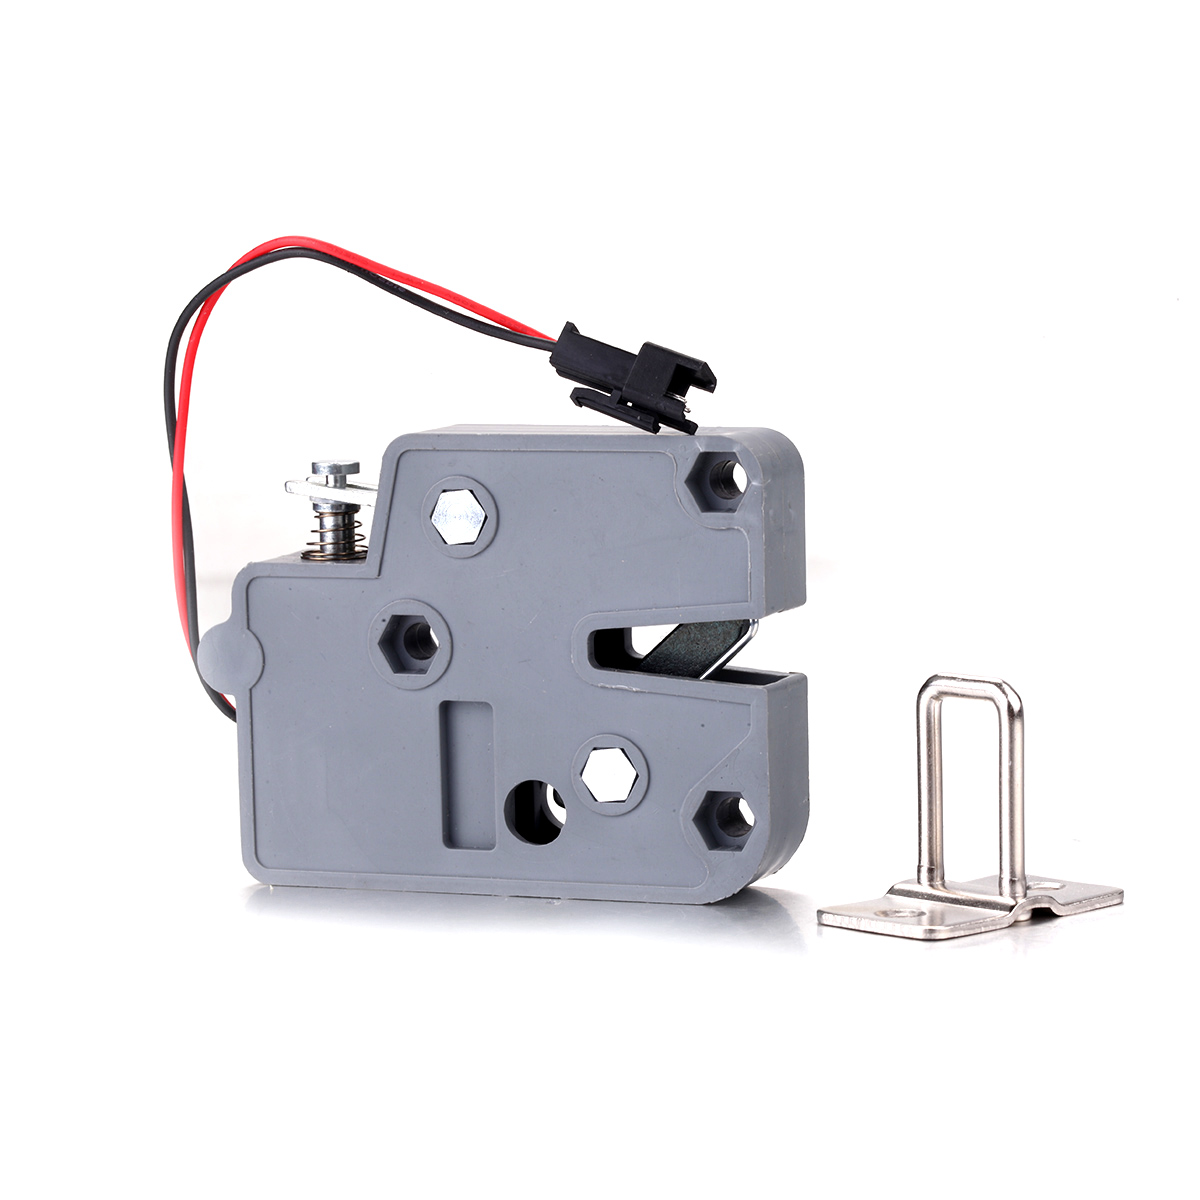 DC 12V 0.43A/2A Mini Electric Bolt Lock for Cabinet Small Cabinet Lock/solenoid Door Lock small size dc 24v mini electric bolt lock for cabinet drawer etc